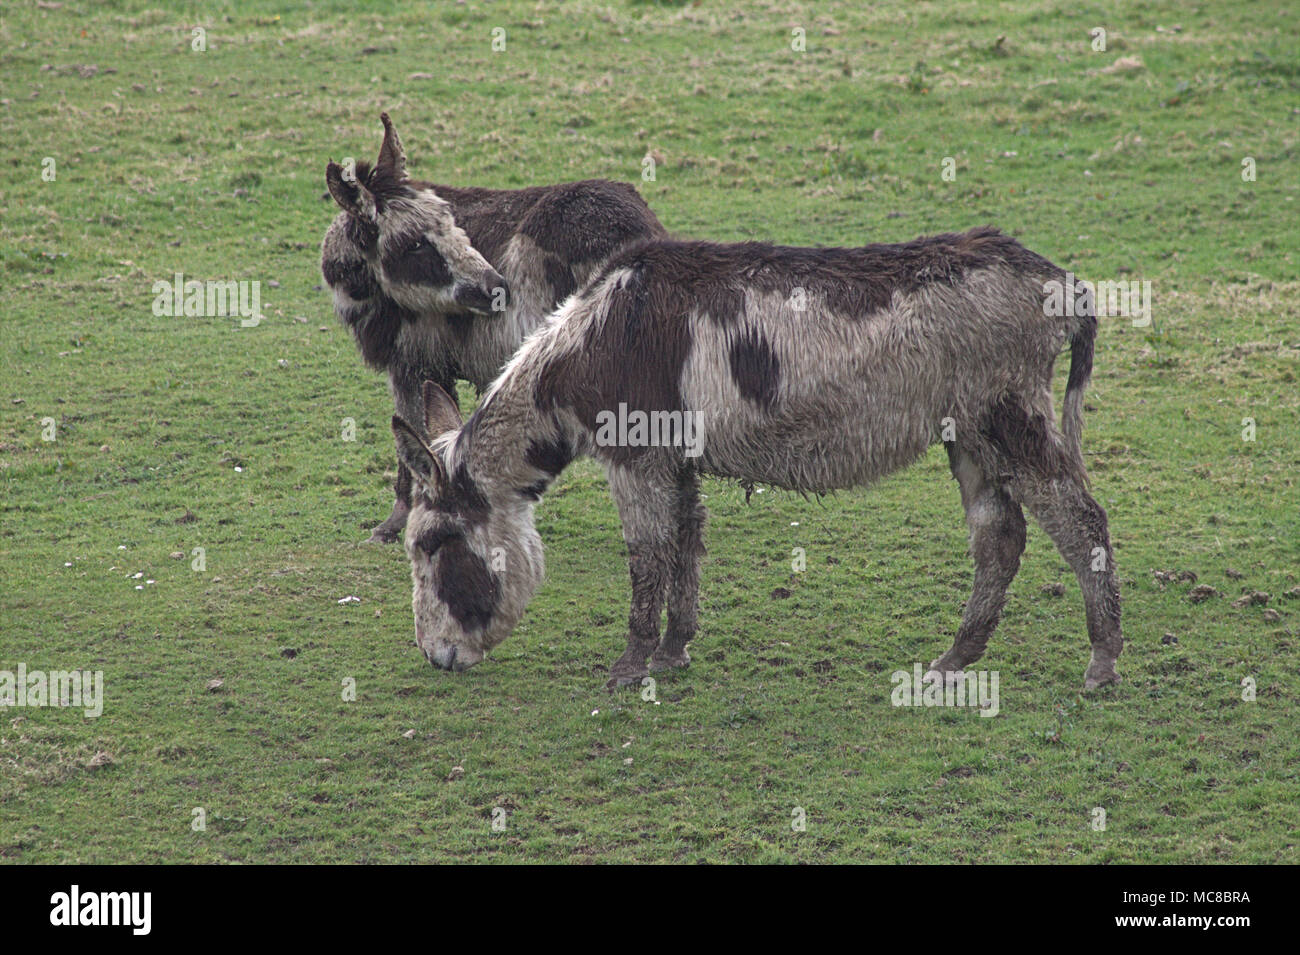 pair of rescue donkeys, Equus africanus asinus, out in the fields of the roaring donkey sancuary, west cork, ireland Stock Photo